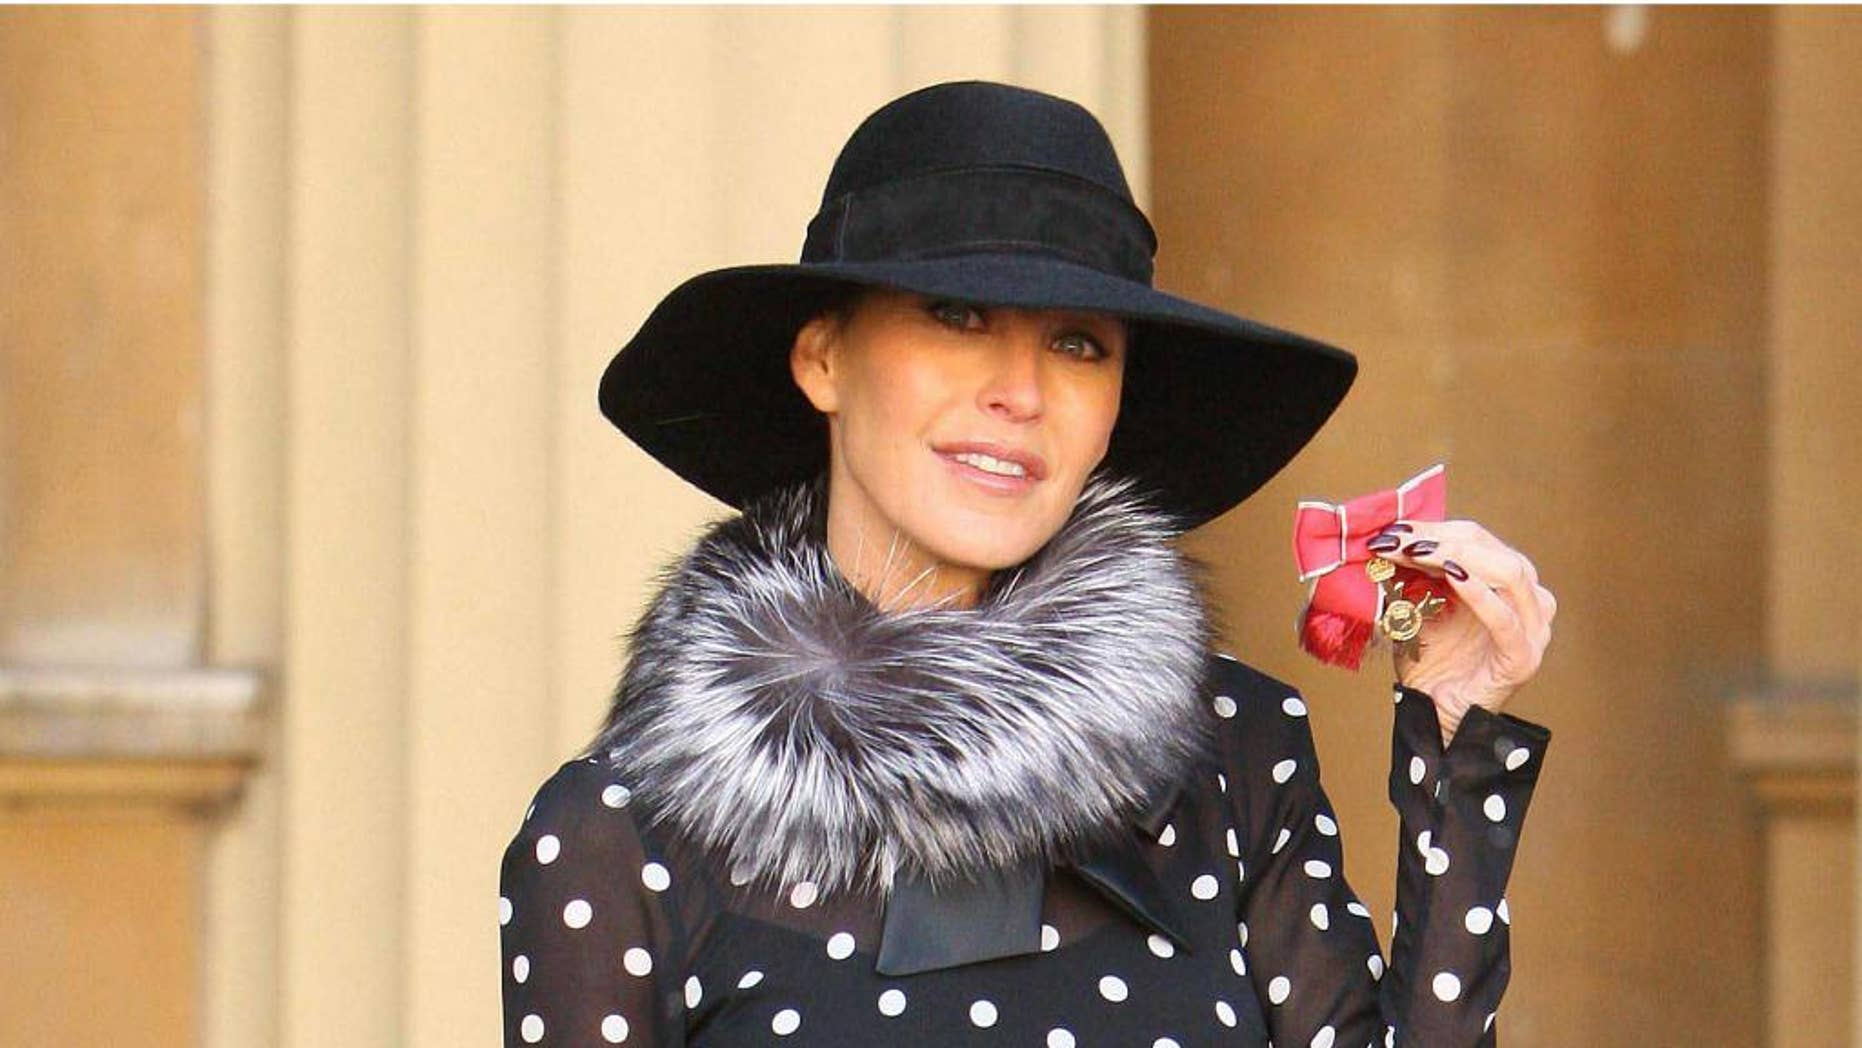 """FILE-  In this Wednesday Oct. 20, 2010 file photo, Britain's Tamara Mellon, co-founder of Jimmy Choo, displays her OBE, which was awarded by Britain's Queen Elizabeth II, at an investiture ceremony at Buckingham Palace, London. Luxury shoemaker Jimmy Choo has announced plans to list at least a quarter of its shares on the London Stock Exchange next month in Oct. 2014. The designer label, which recorded sales of 282 million pounds ($462 million) in 2013, said it is looking to expand in Asia and other new markets, and plans to open 10 to 15 stores per year. Malaysian-born designer Jimmy Choo and the brand's co-founder Tamara Mellon opened their first store in London in 1996. It is now owned by private investment firm JAB Luxury, which acquired it in 2011, and the label now has 120 stores worldwide. Peter Harf, non-executive chairman of Jimmy Choo, said in a statement Tuesday the company is """"confident that shareholders can expect strong growth and cash flow in the years to come.""""  (AP Photo/Dominic Lipinski, Pool, file)"""